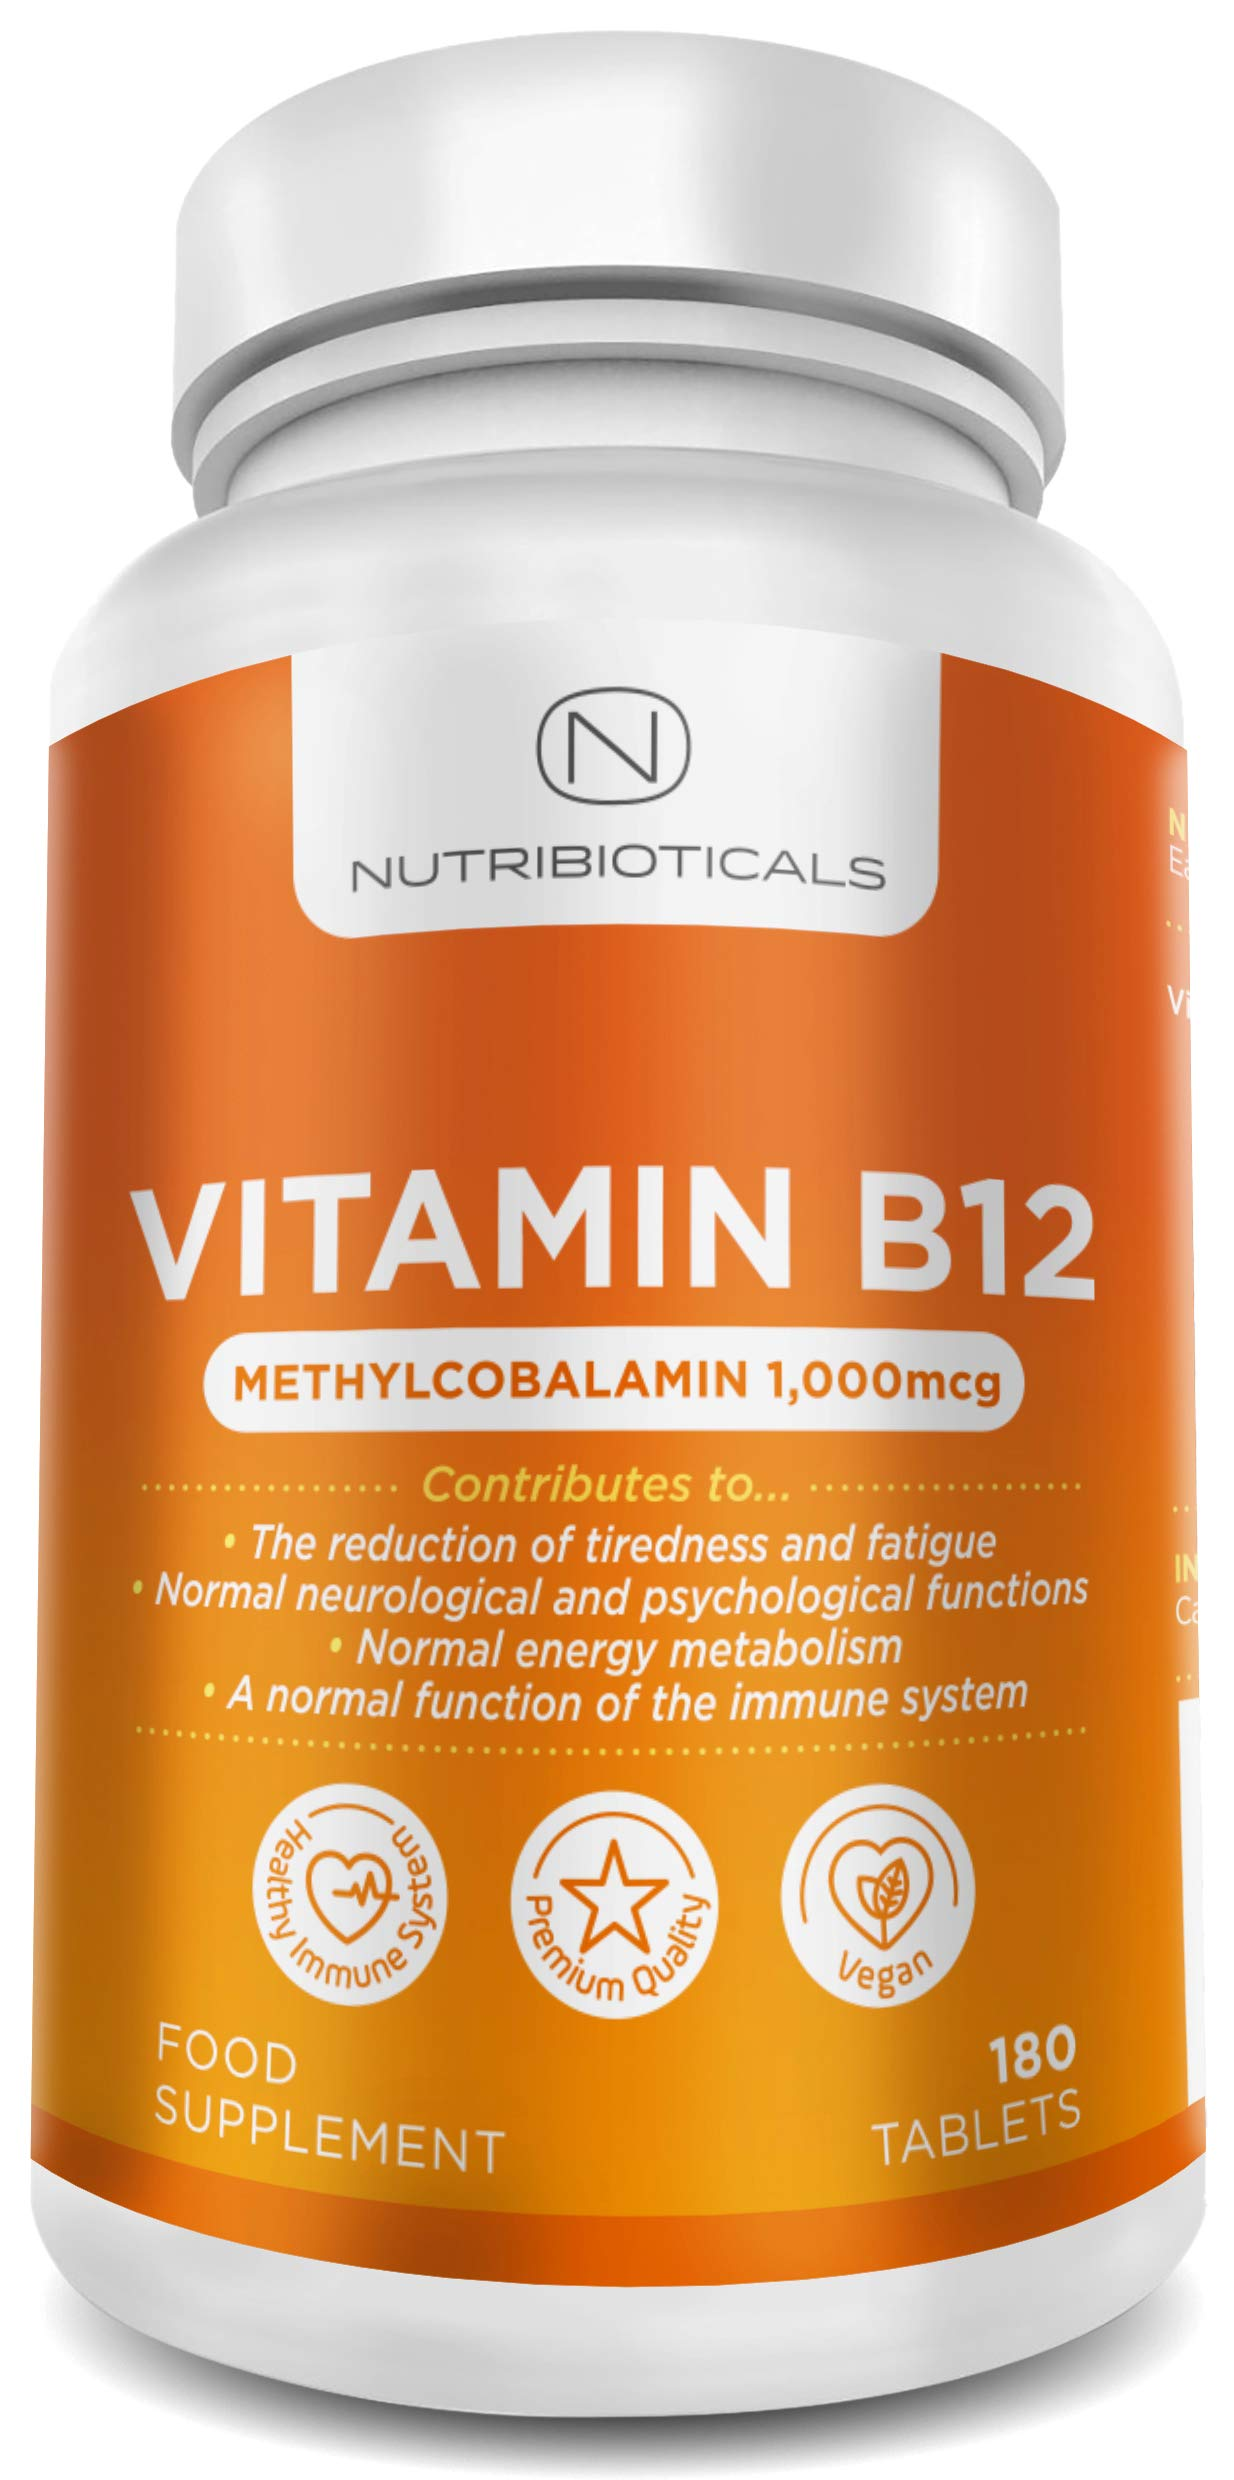 """Vitamin B12 Methylcobalamin 1000mcg 180 Tablets (6 Month Supply)   Reduction of tiredness and fatigue & normal function of the immune system - AMAZON'S CHOICE for """"Vitamin B12"""" product image"""